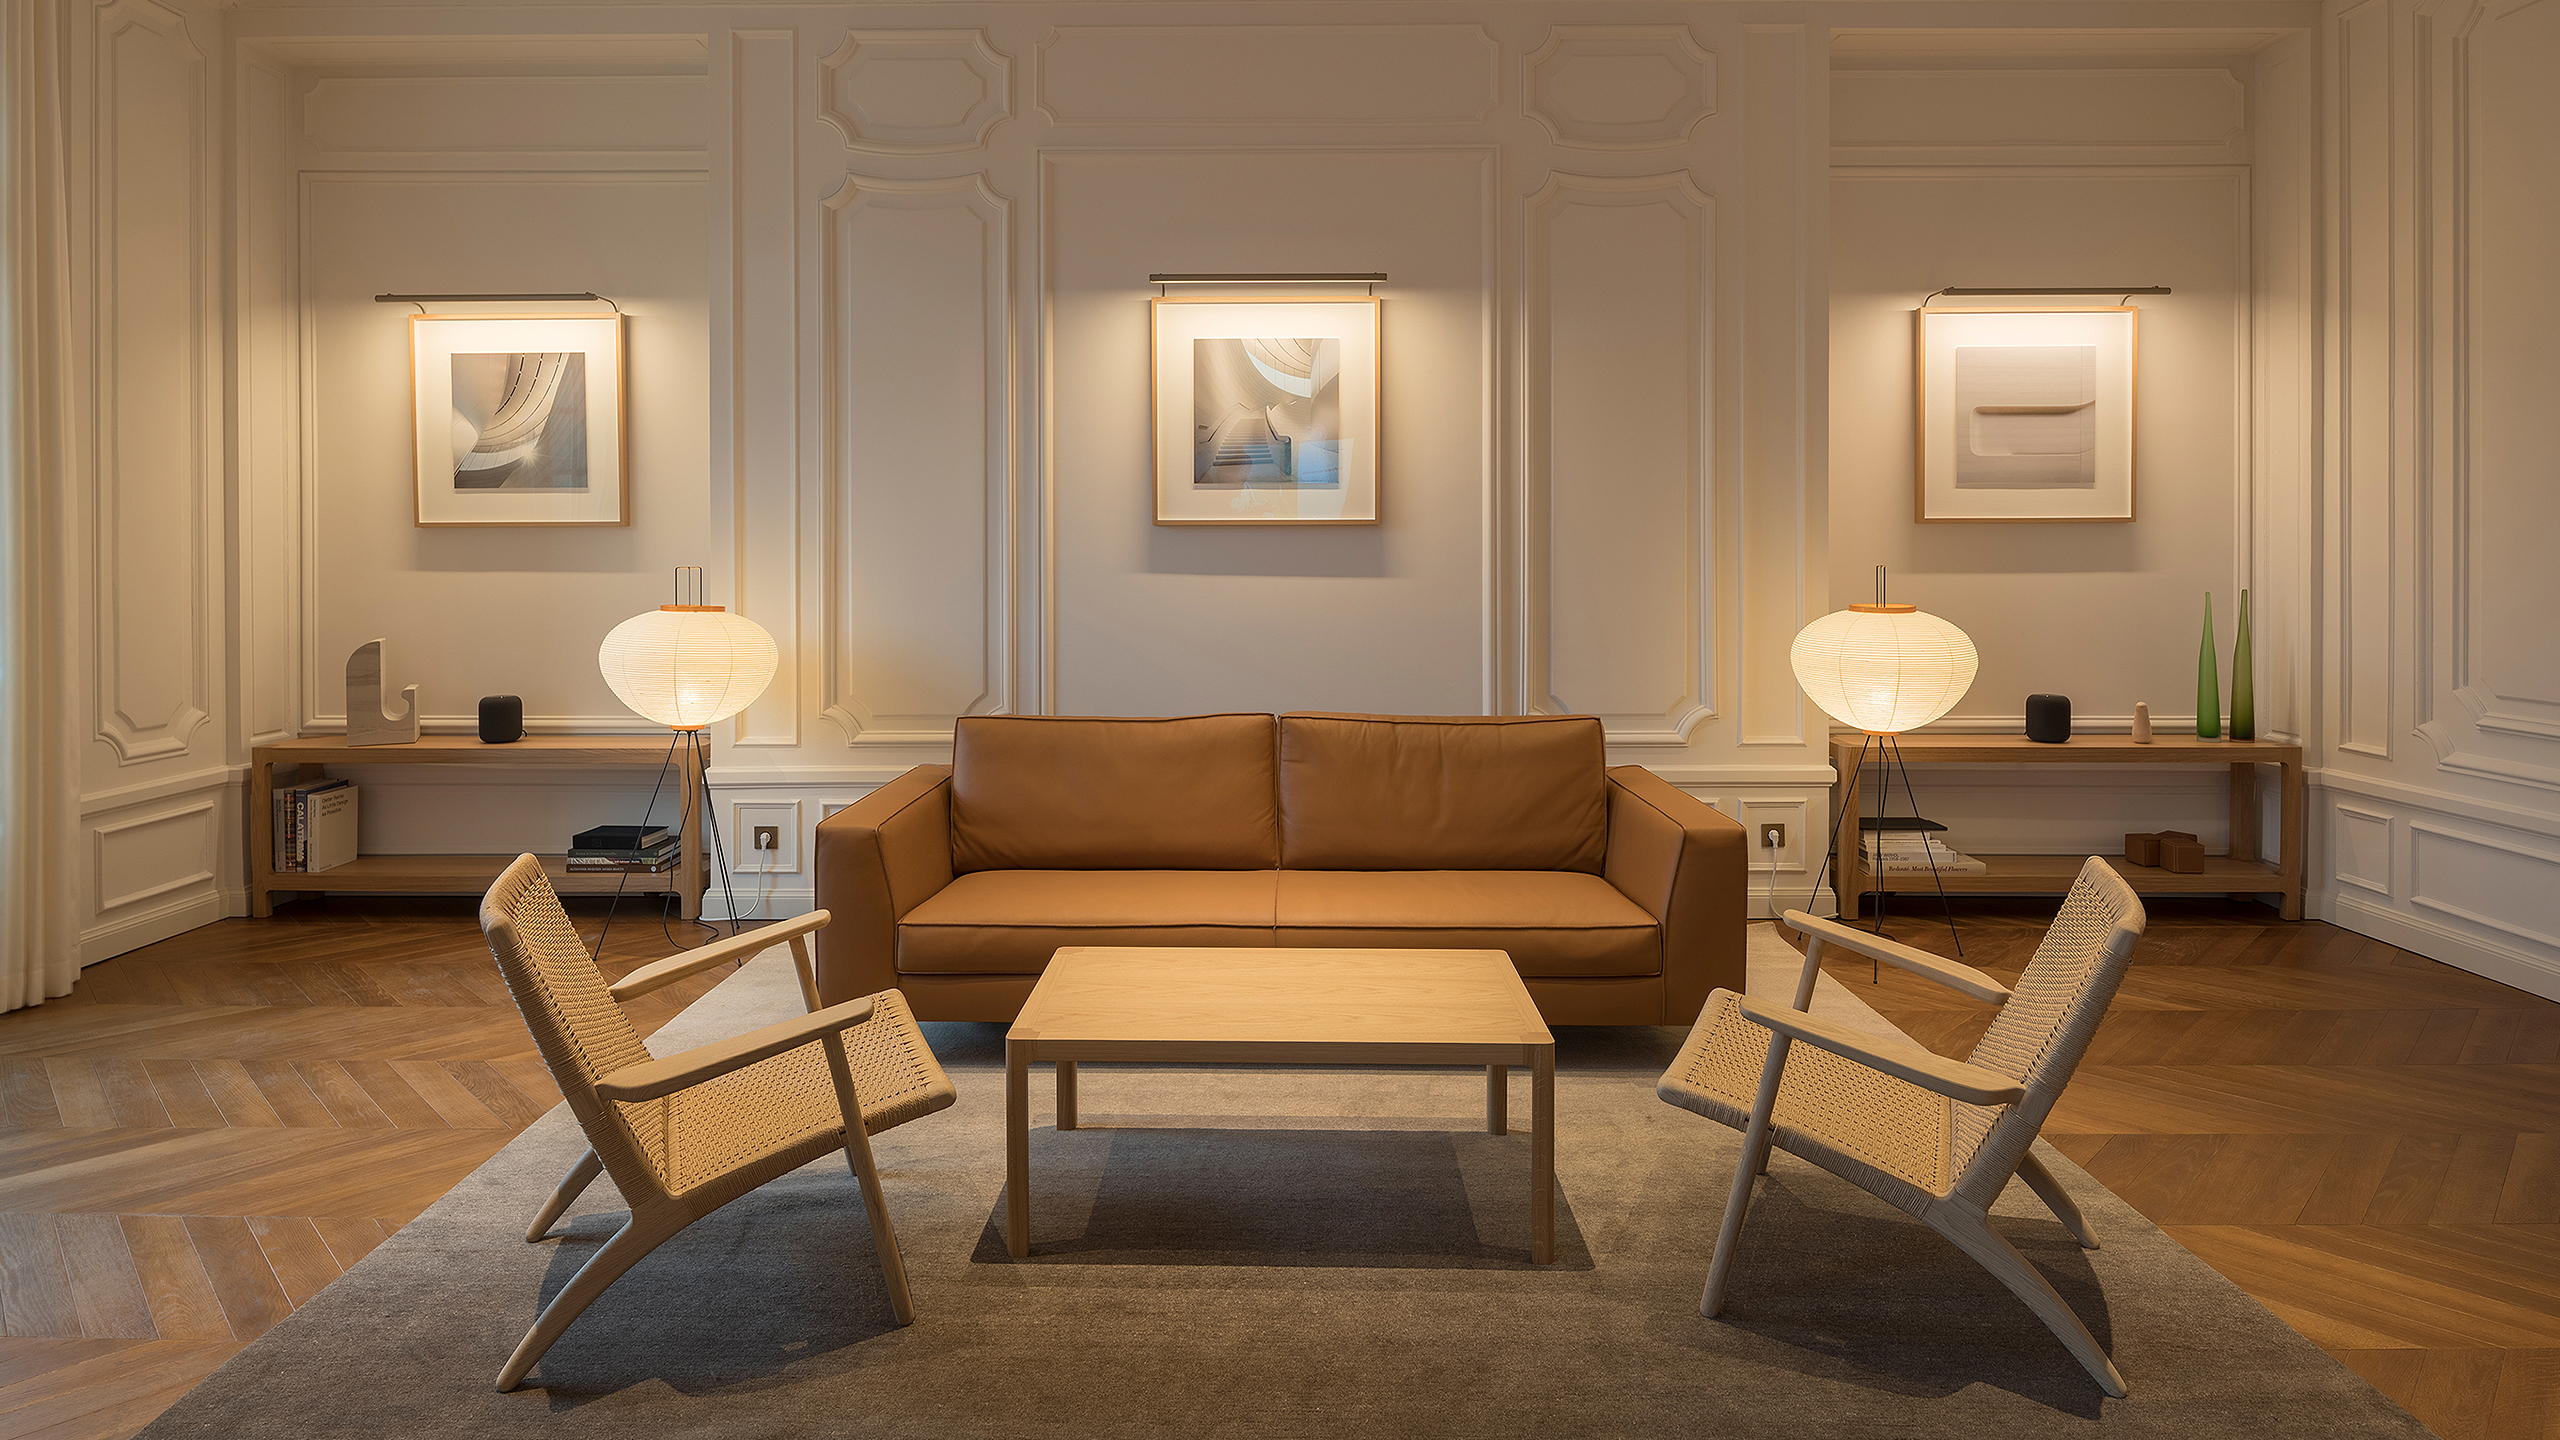 Cataloging The Modern Furnishings Of Apple Store Boardrooms 9to5mac